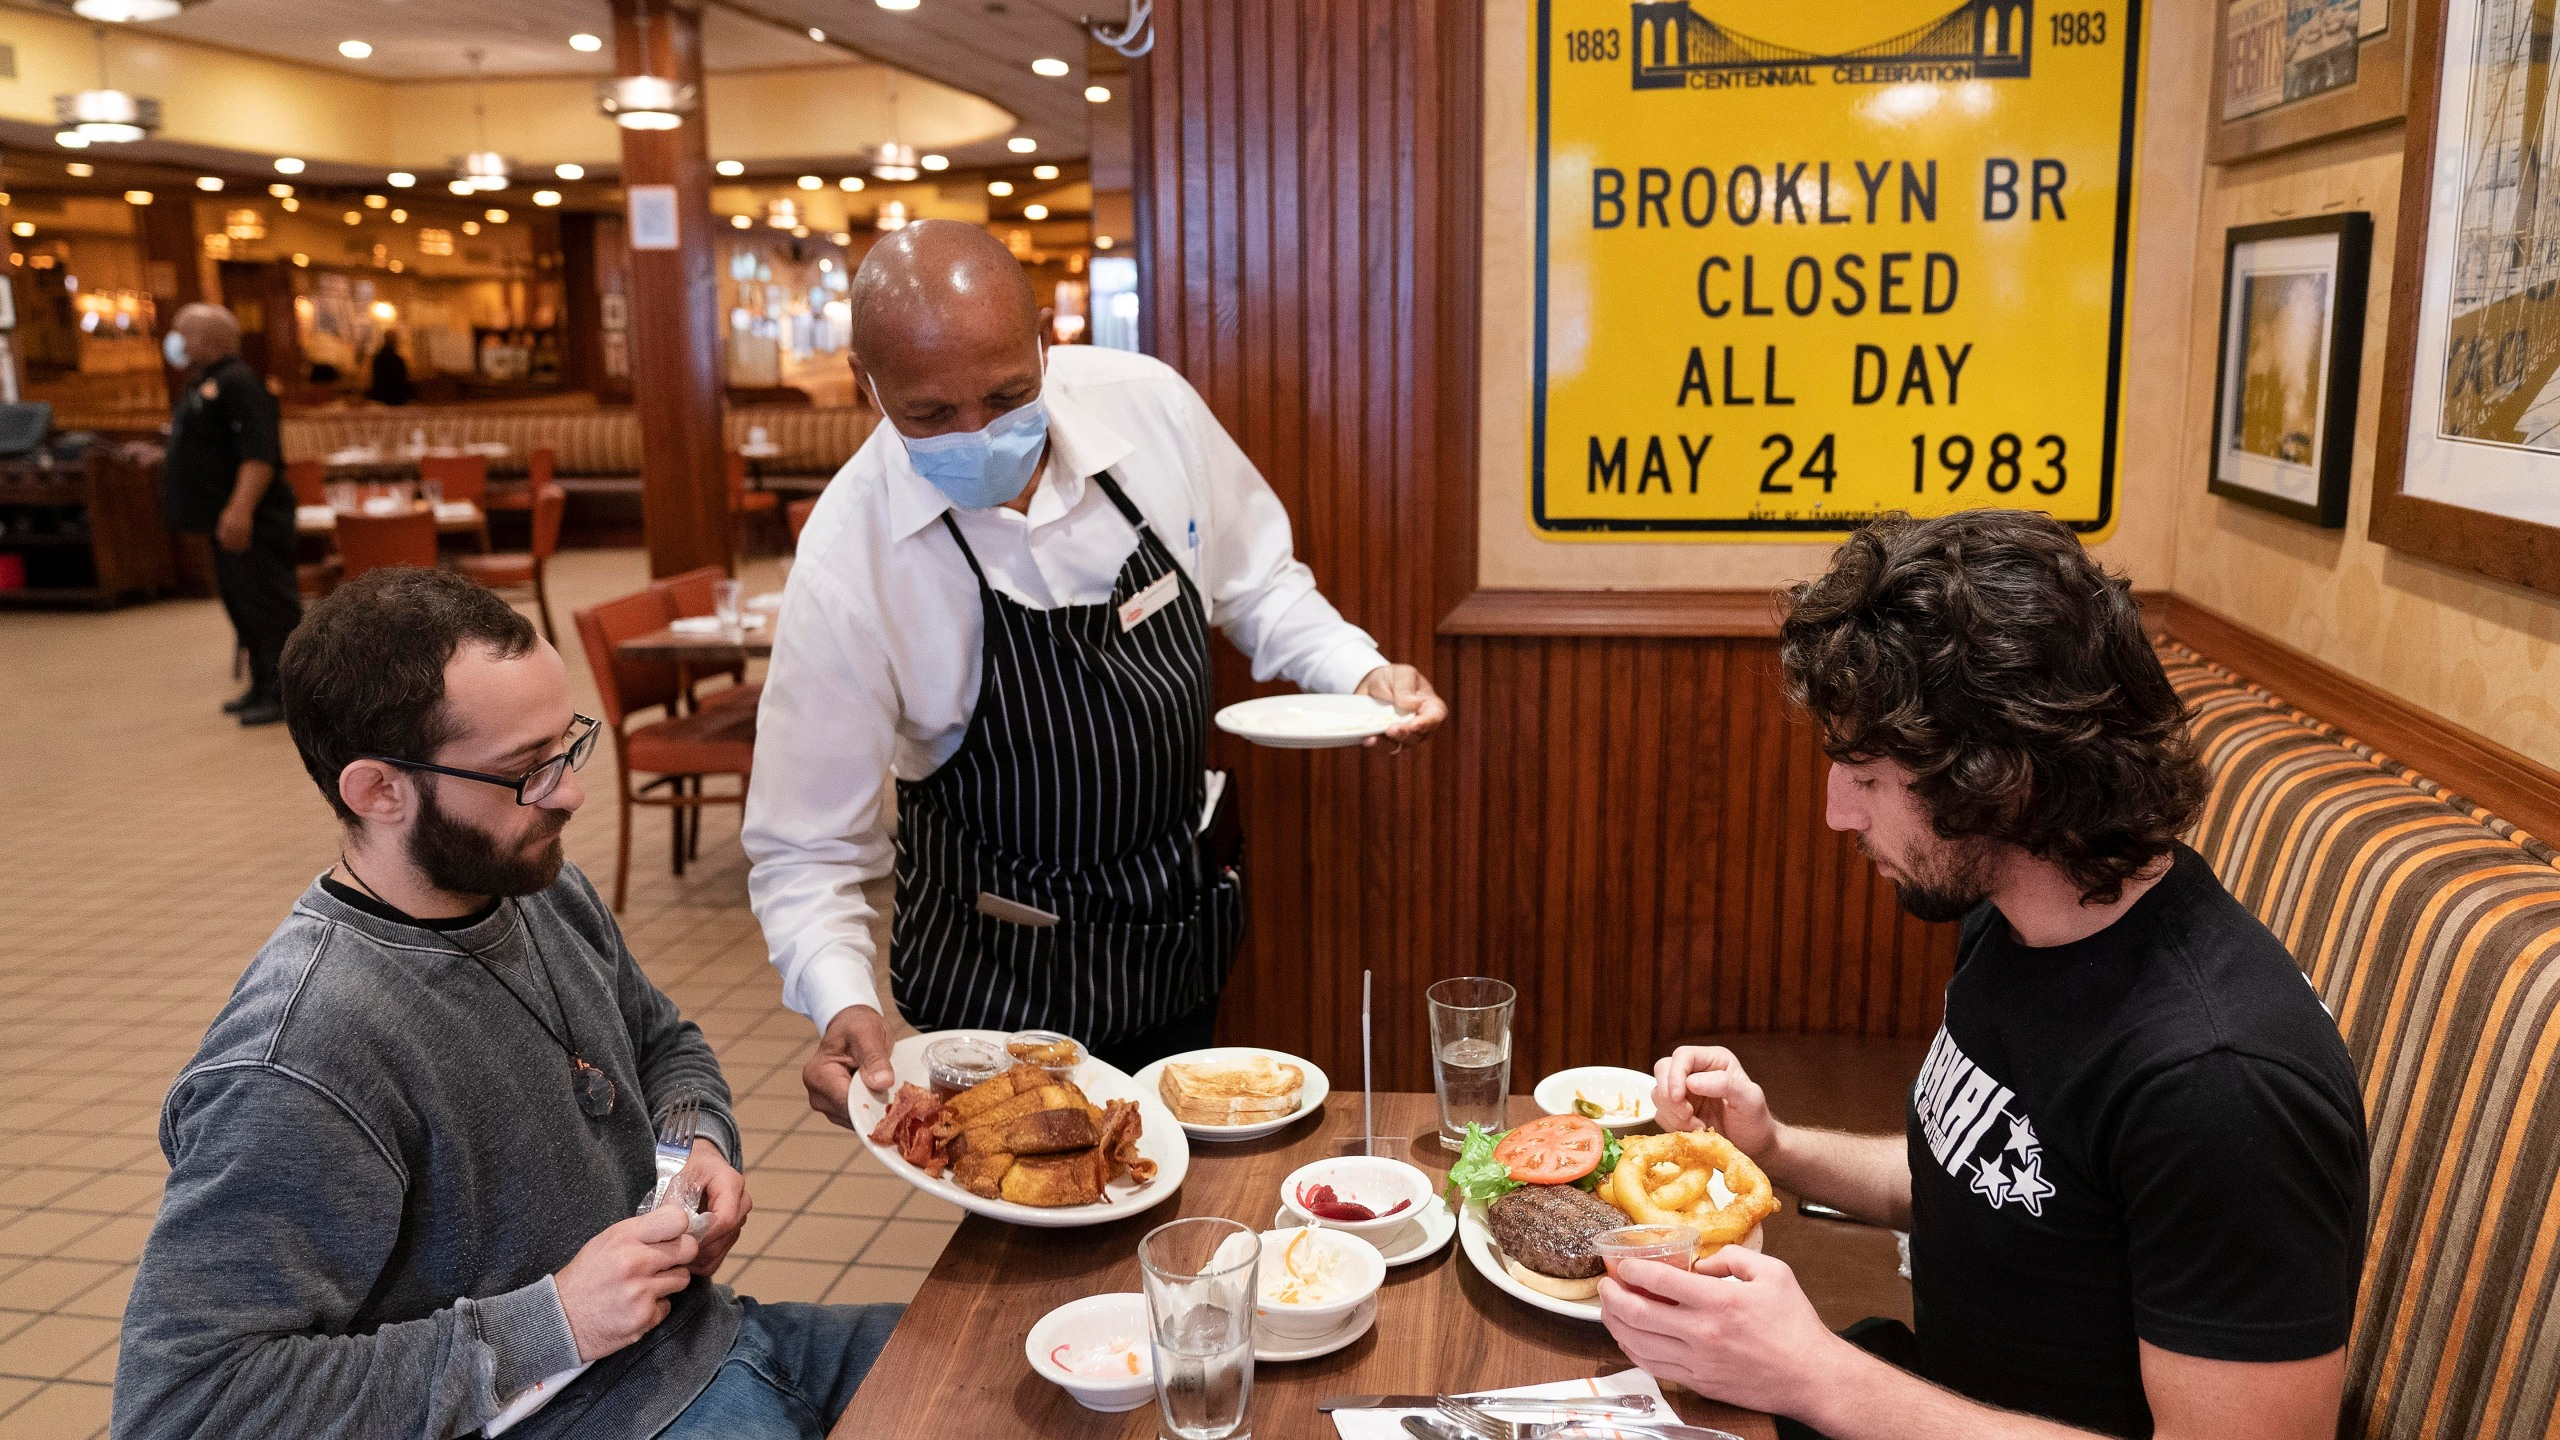 Customers get meal in NY restaurant